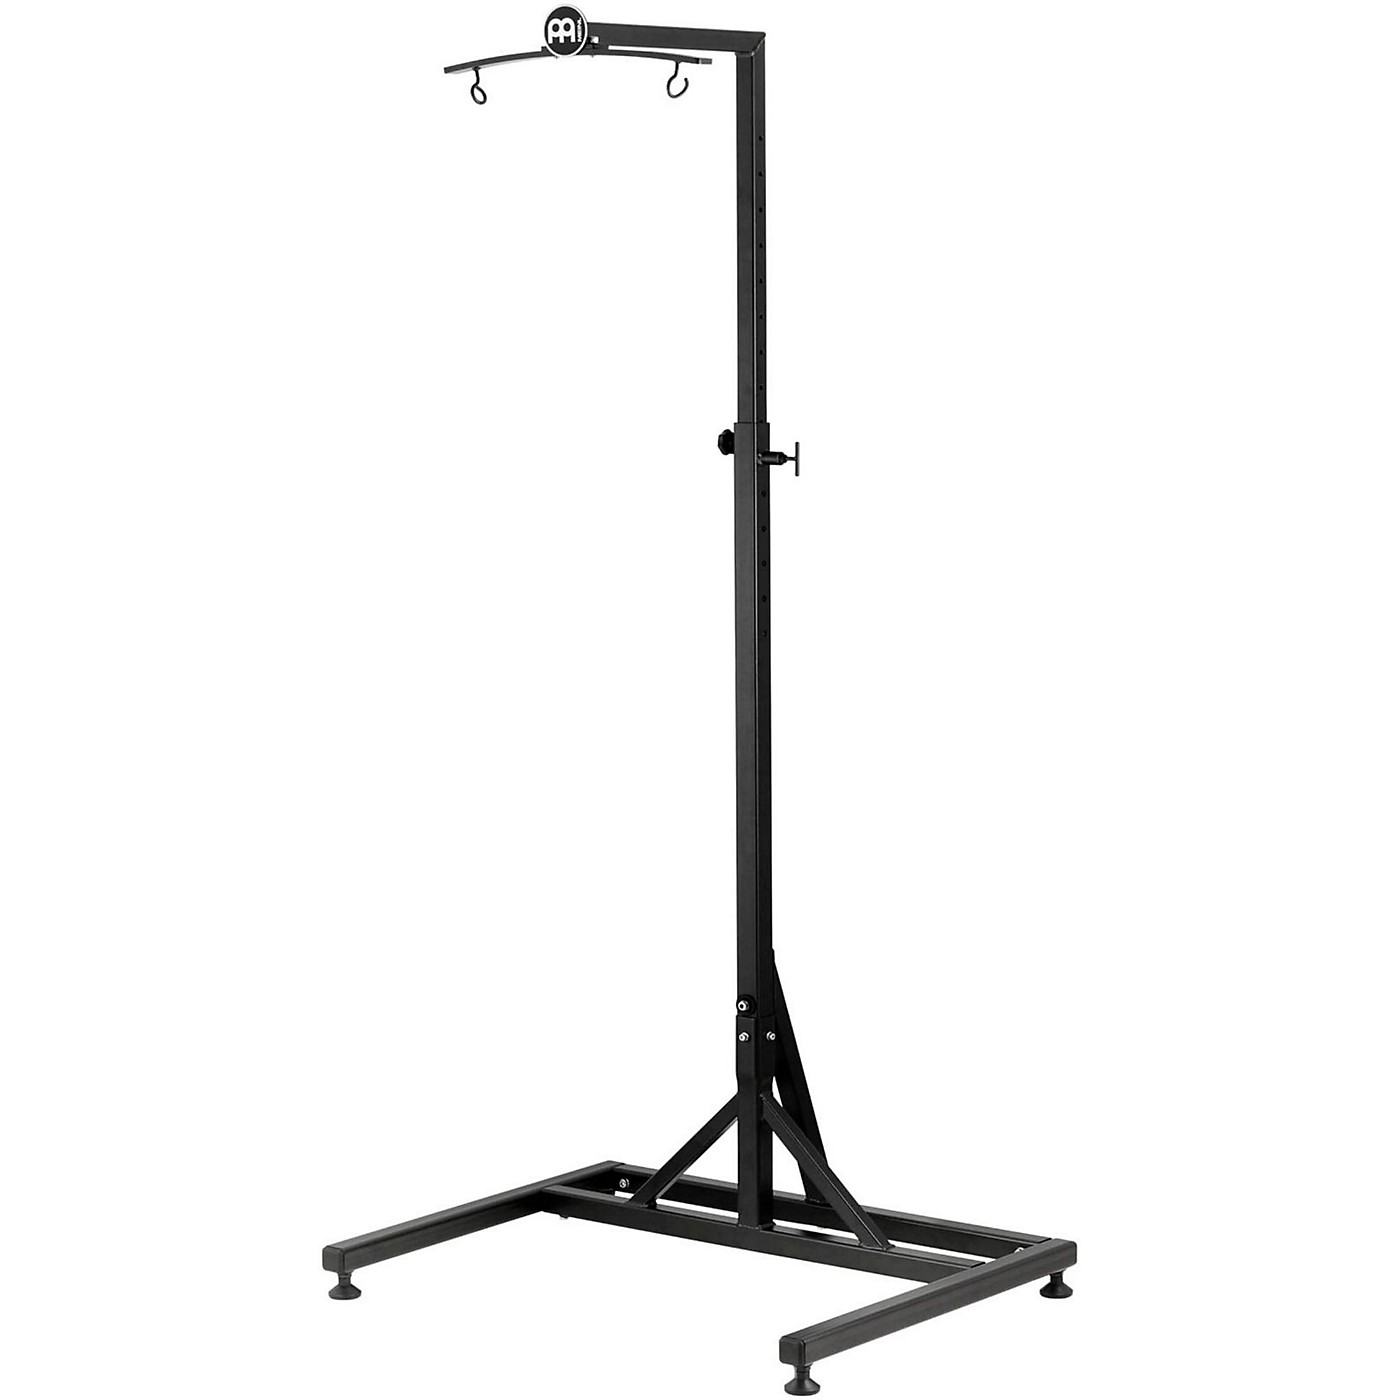 Meinl TMGS-2 Professional Gong/Tam Tam Stand thumbnail